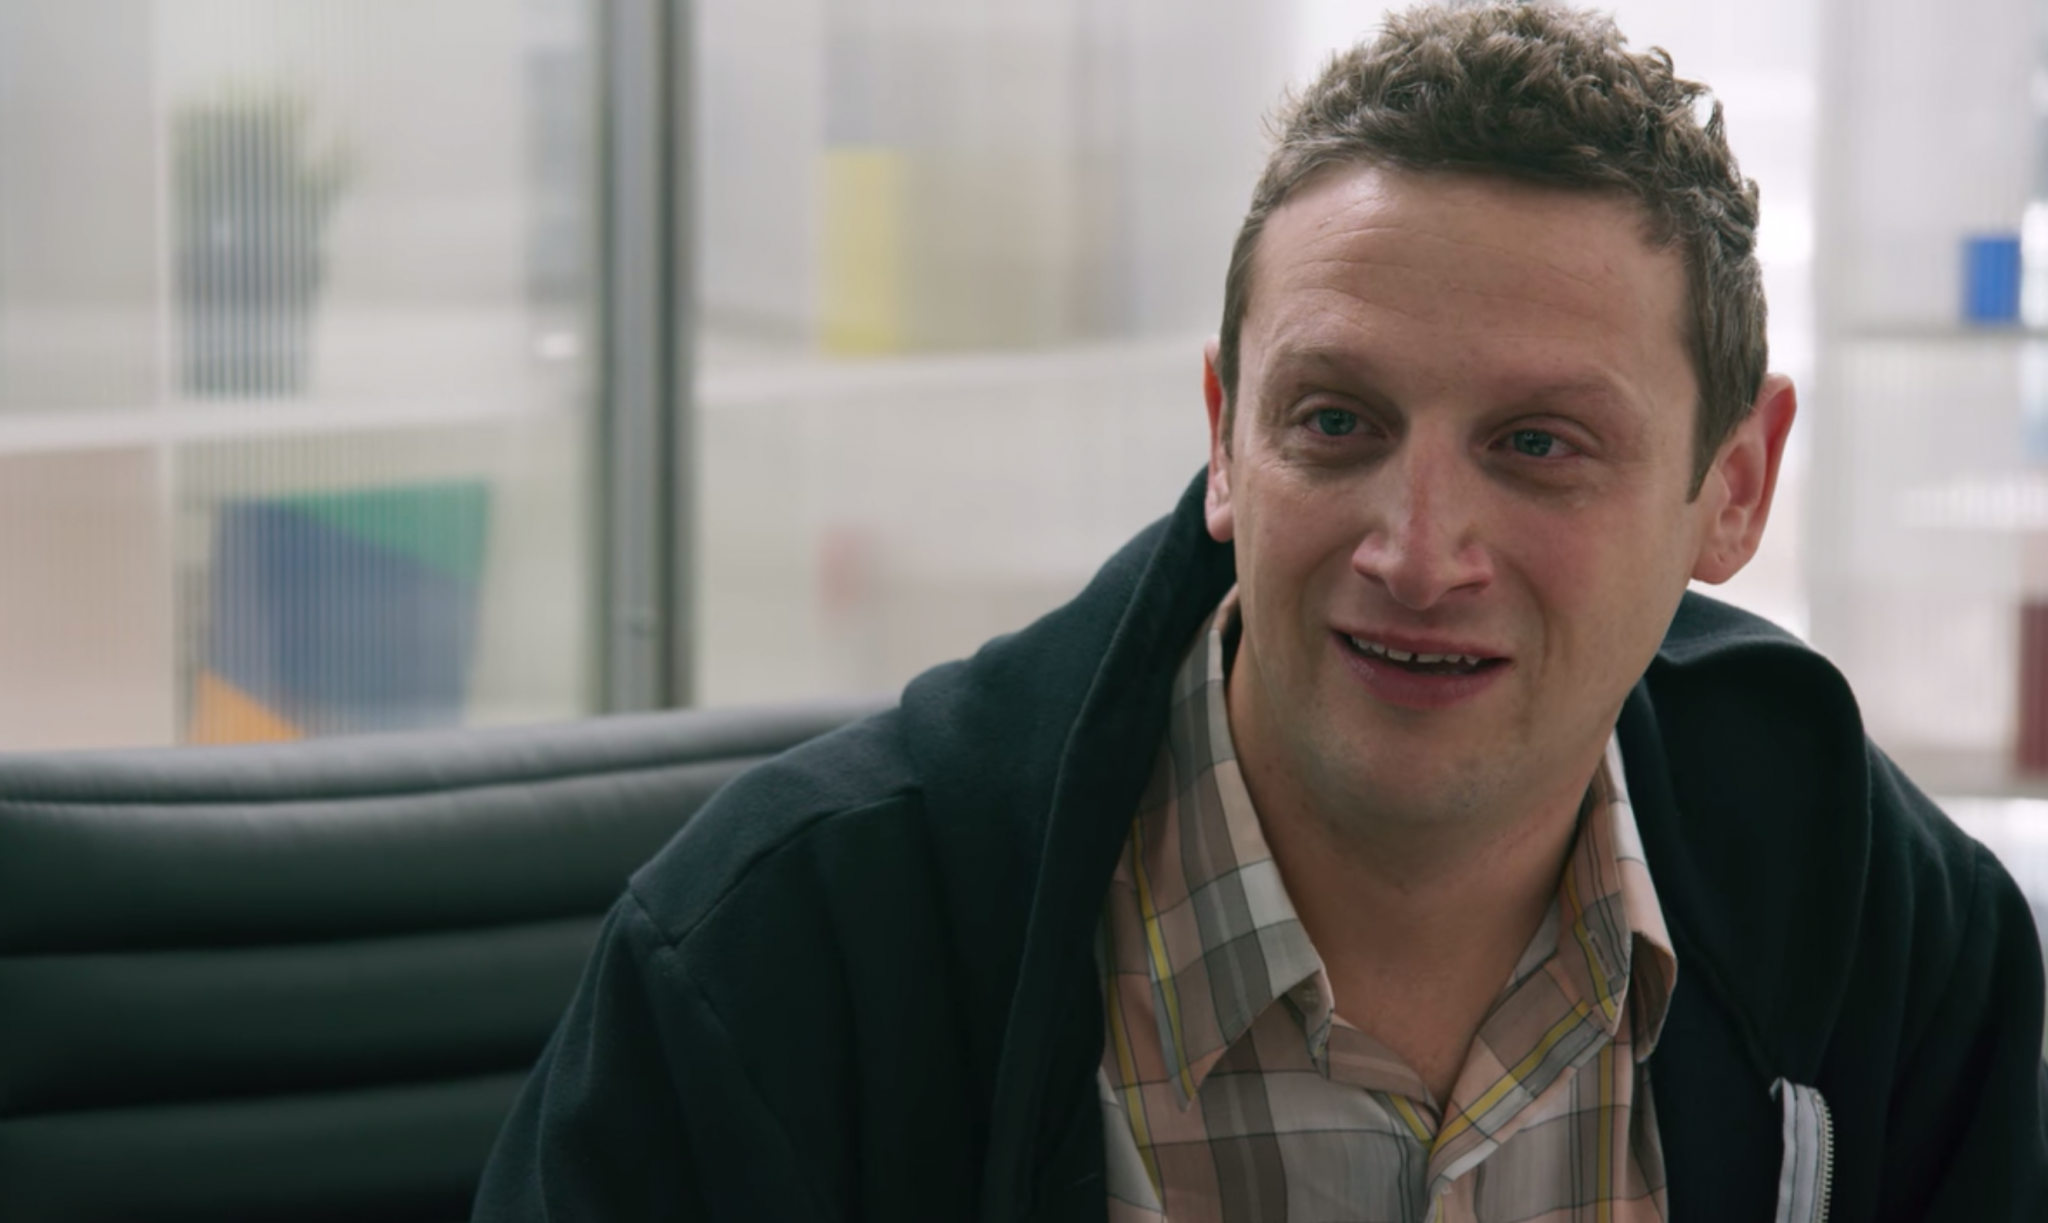 Here Is An I Think You Should Leave Quiz Based On Tim Robinson S